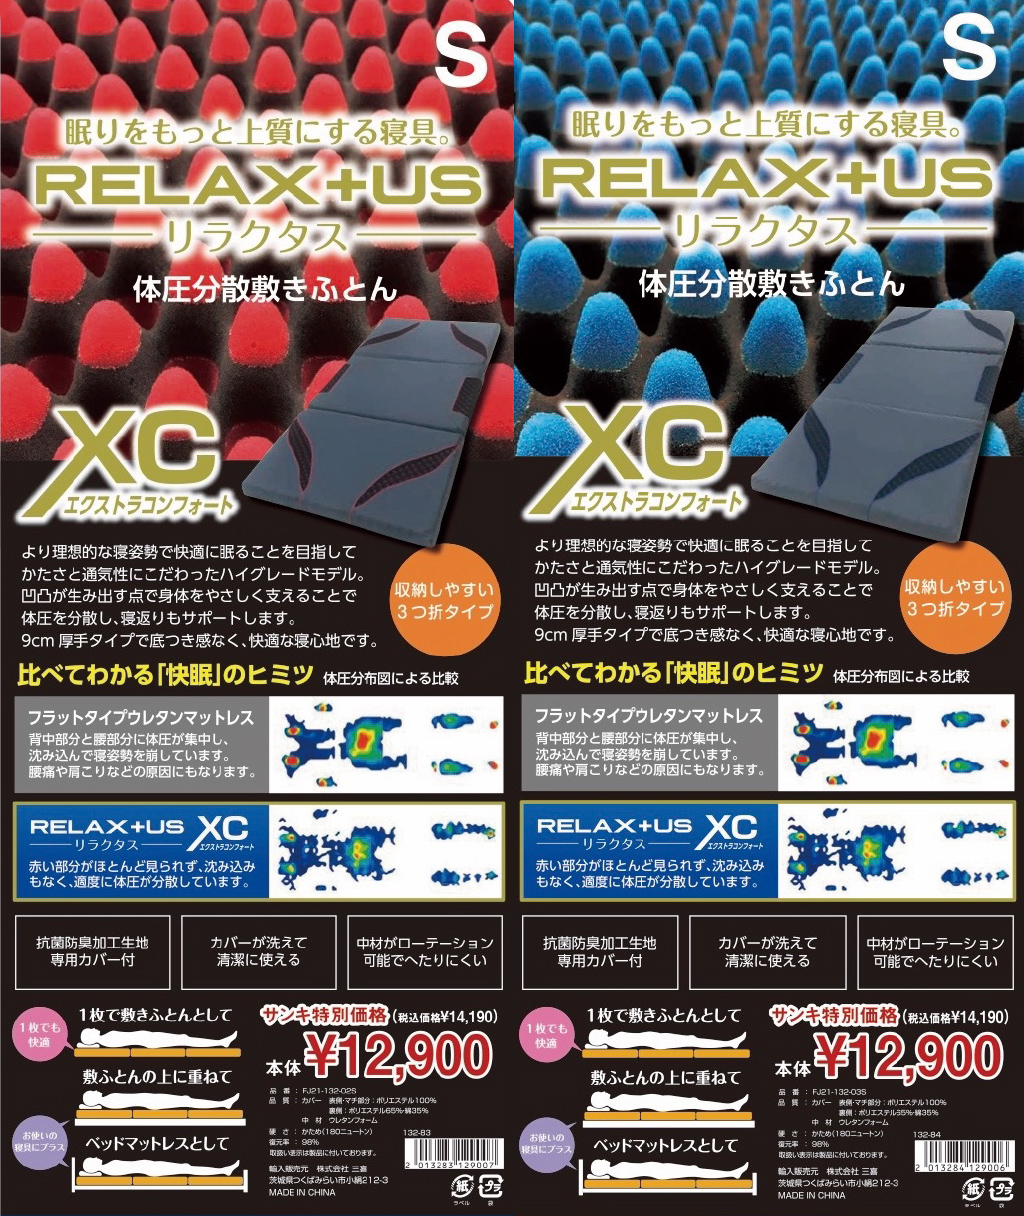 relax+us_image_0917_2